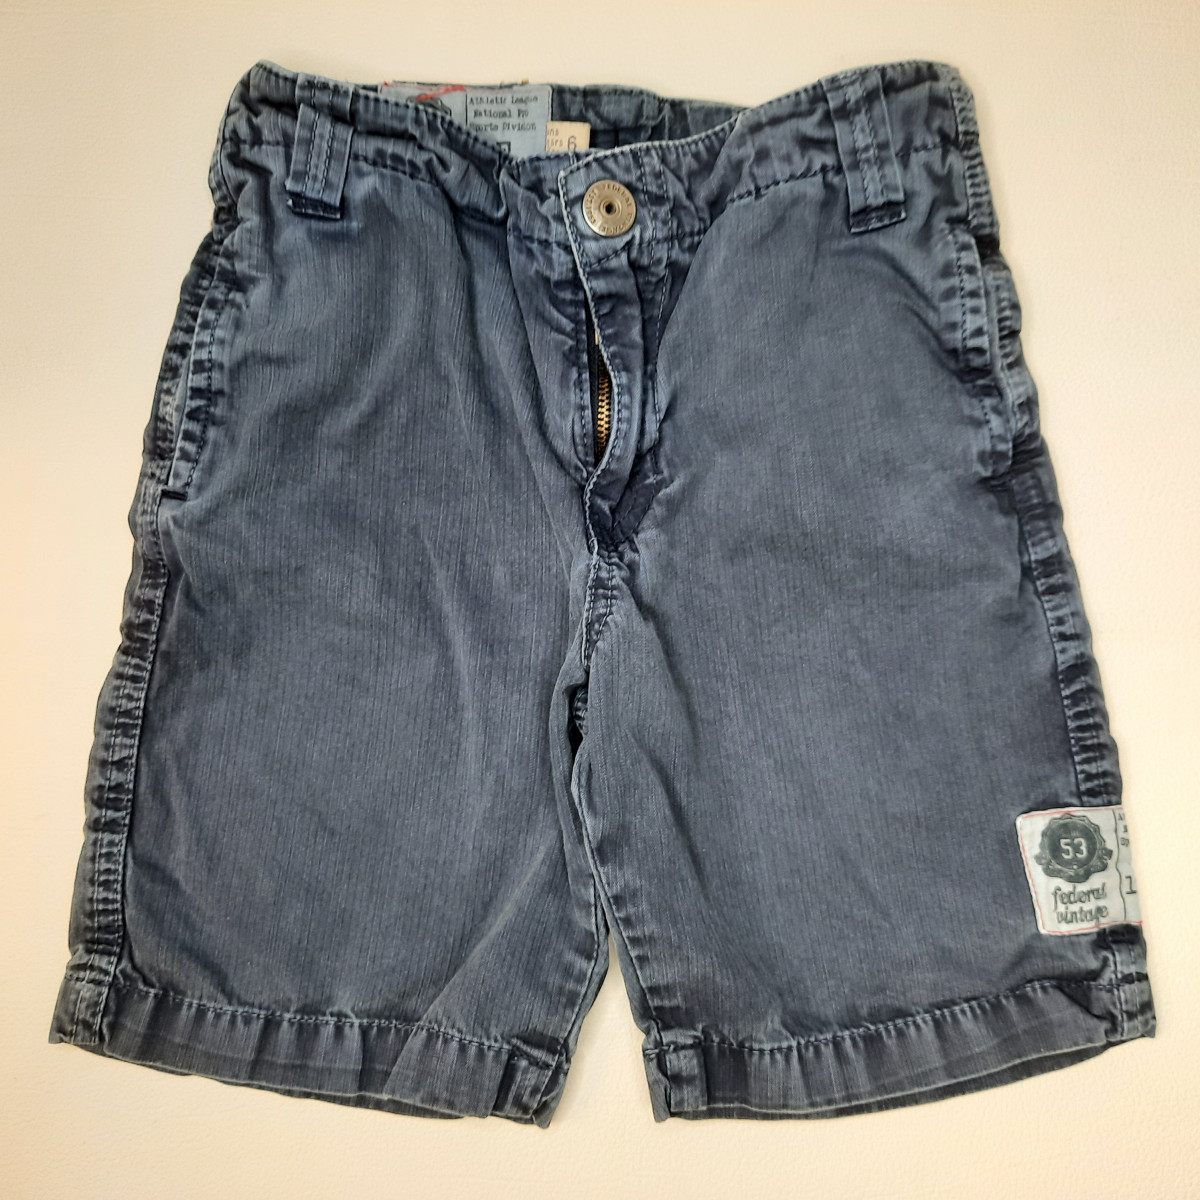 Shorts, Bermudas - photo 22